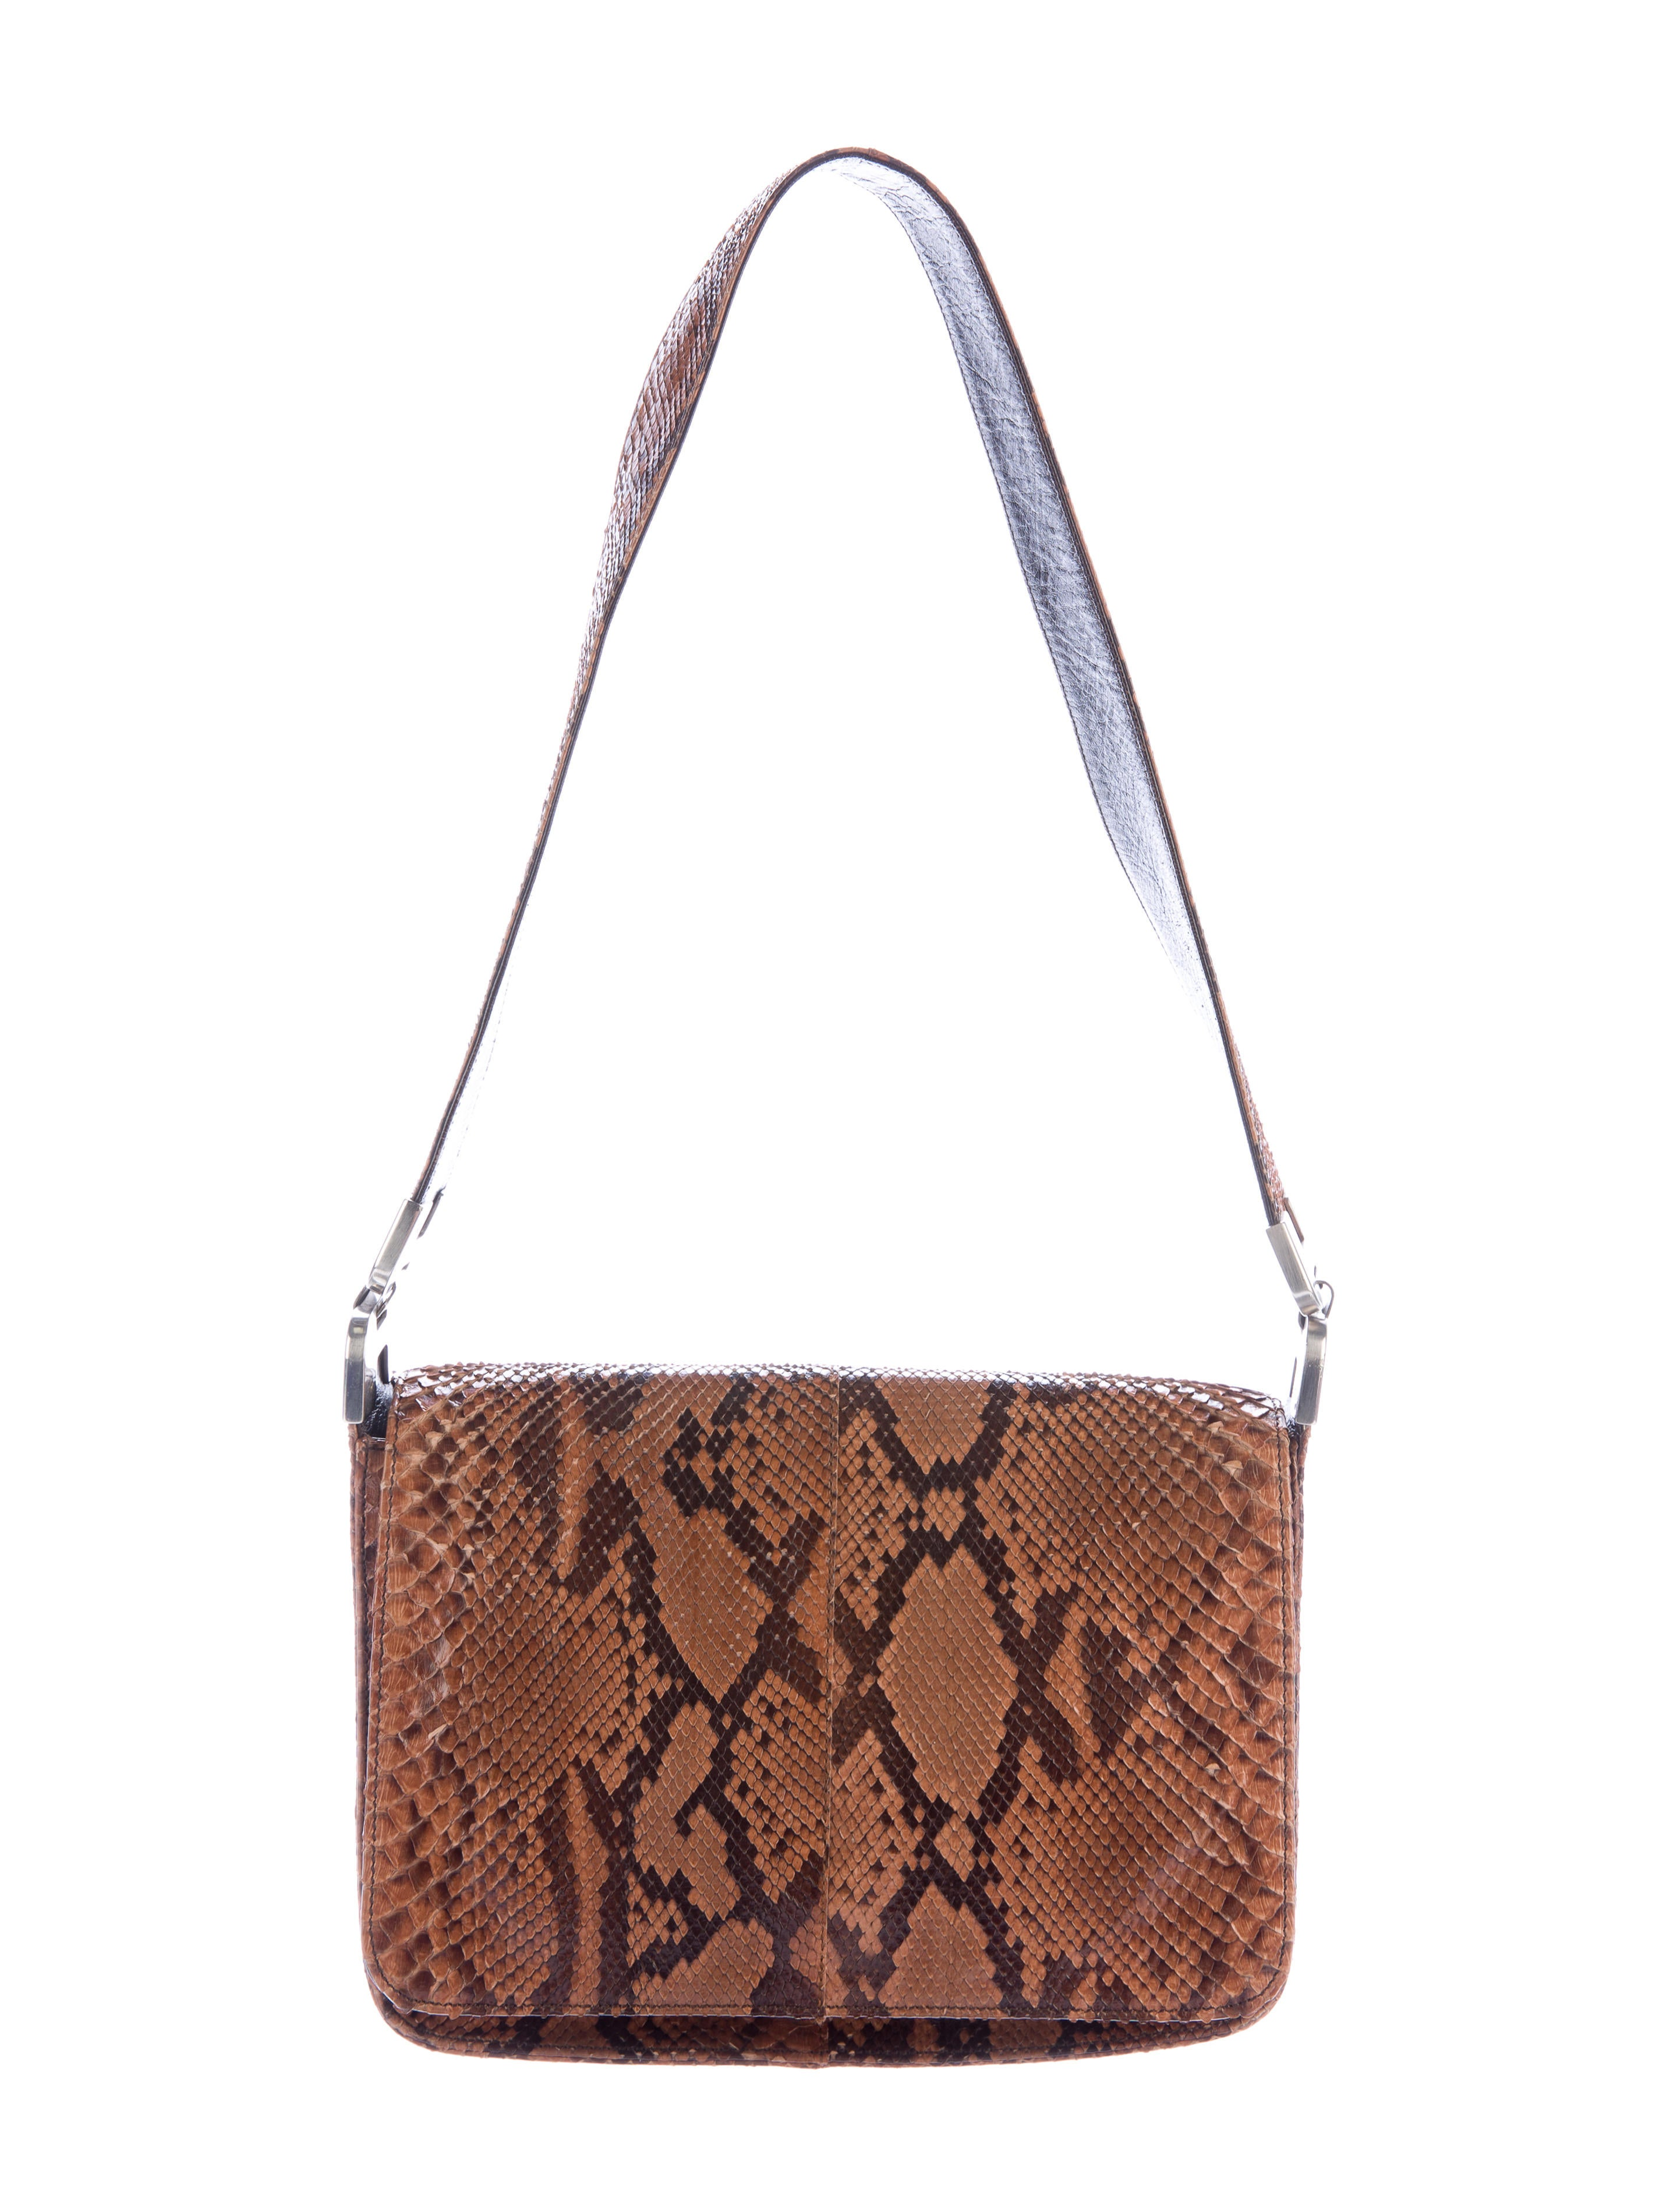 Prada Snakeskin Shoulder Bag Handbags Pra140570 The